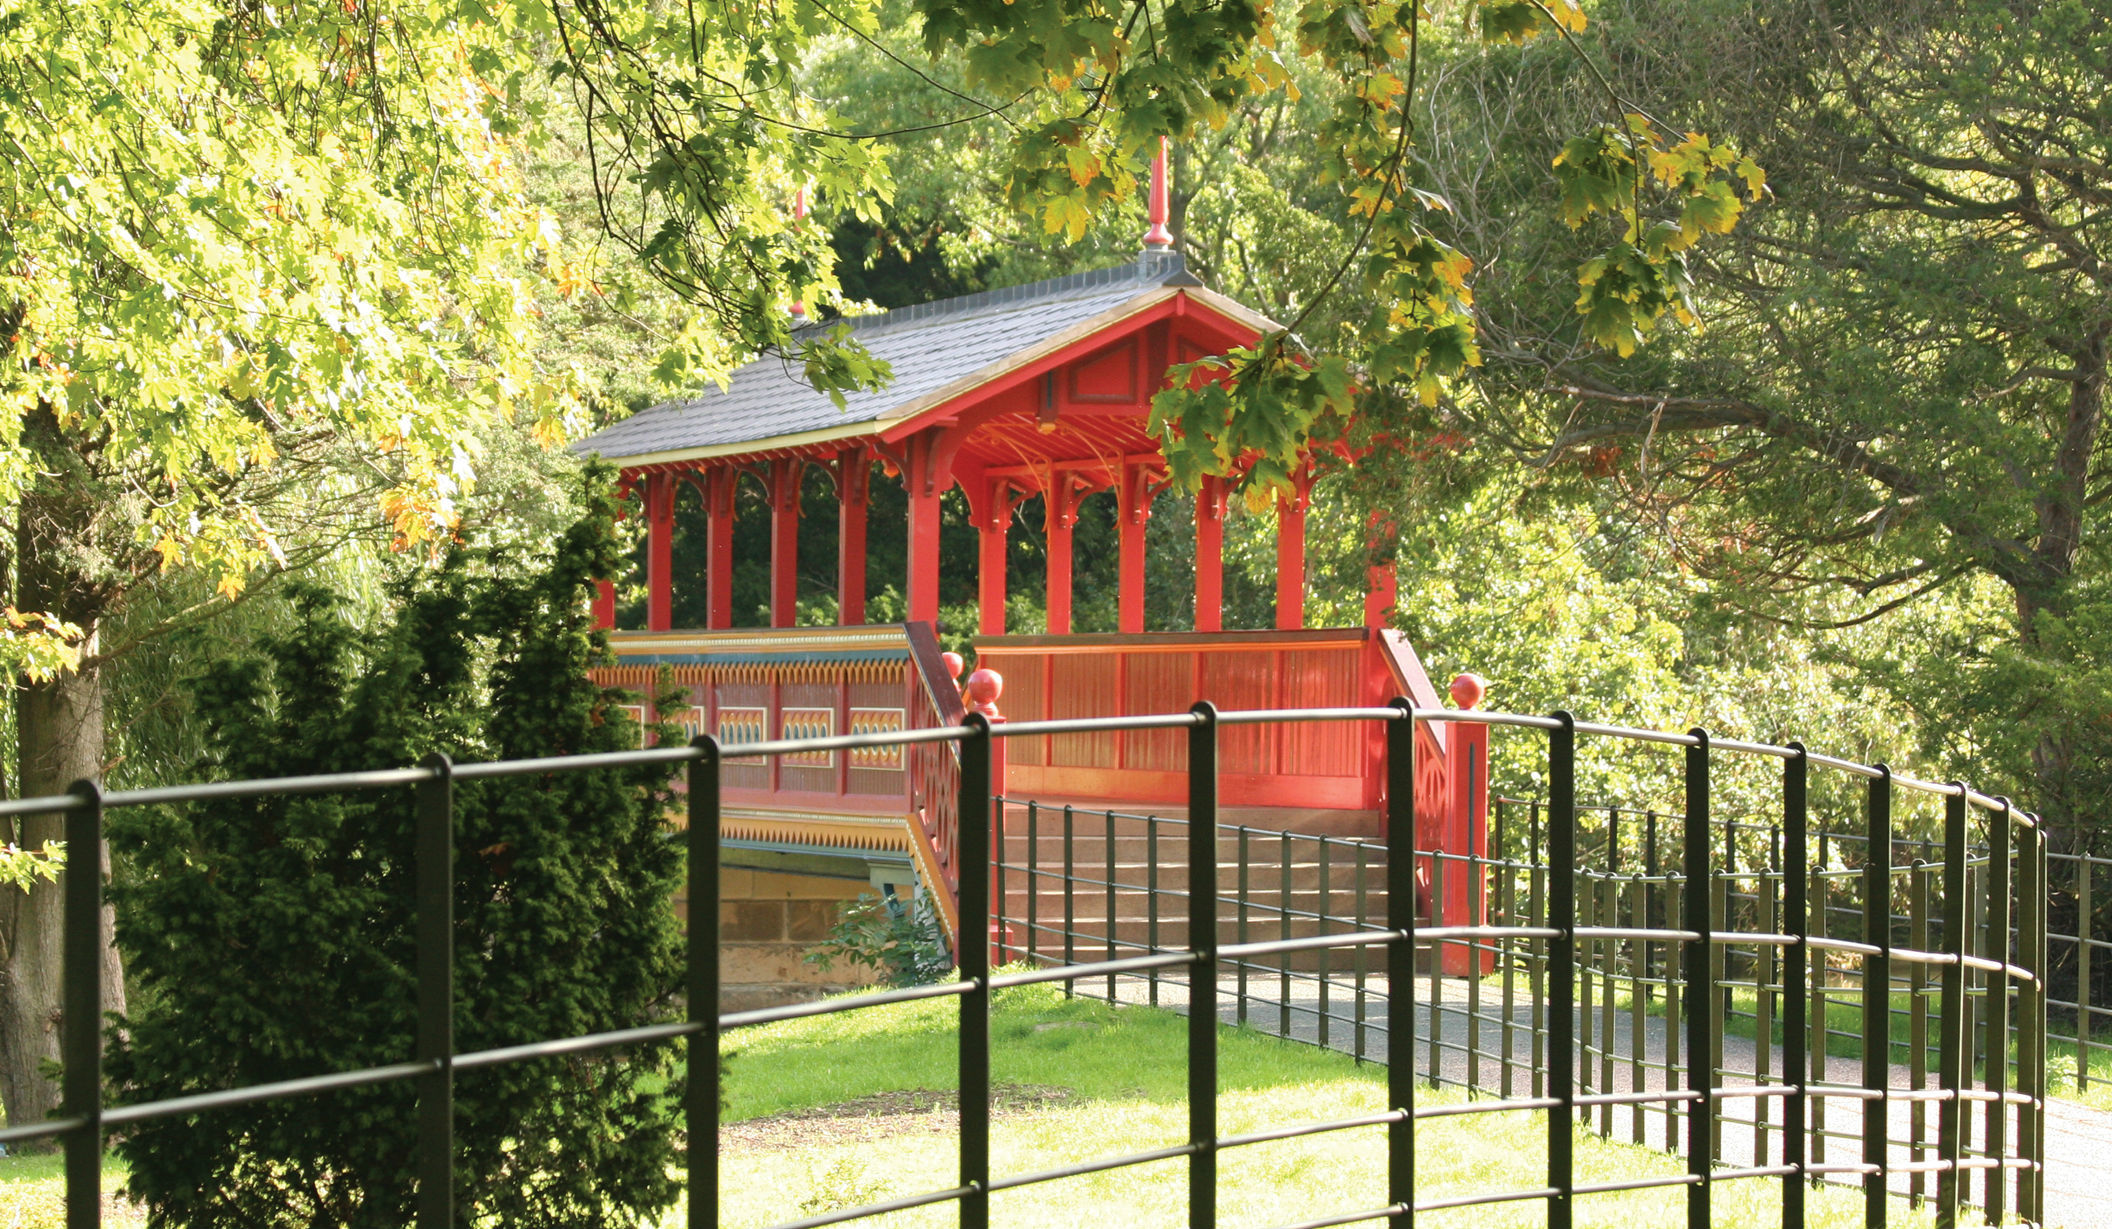 Honours for Wirral parks